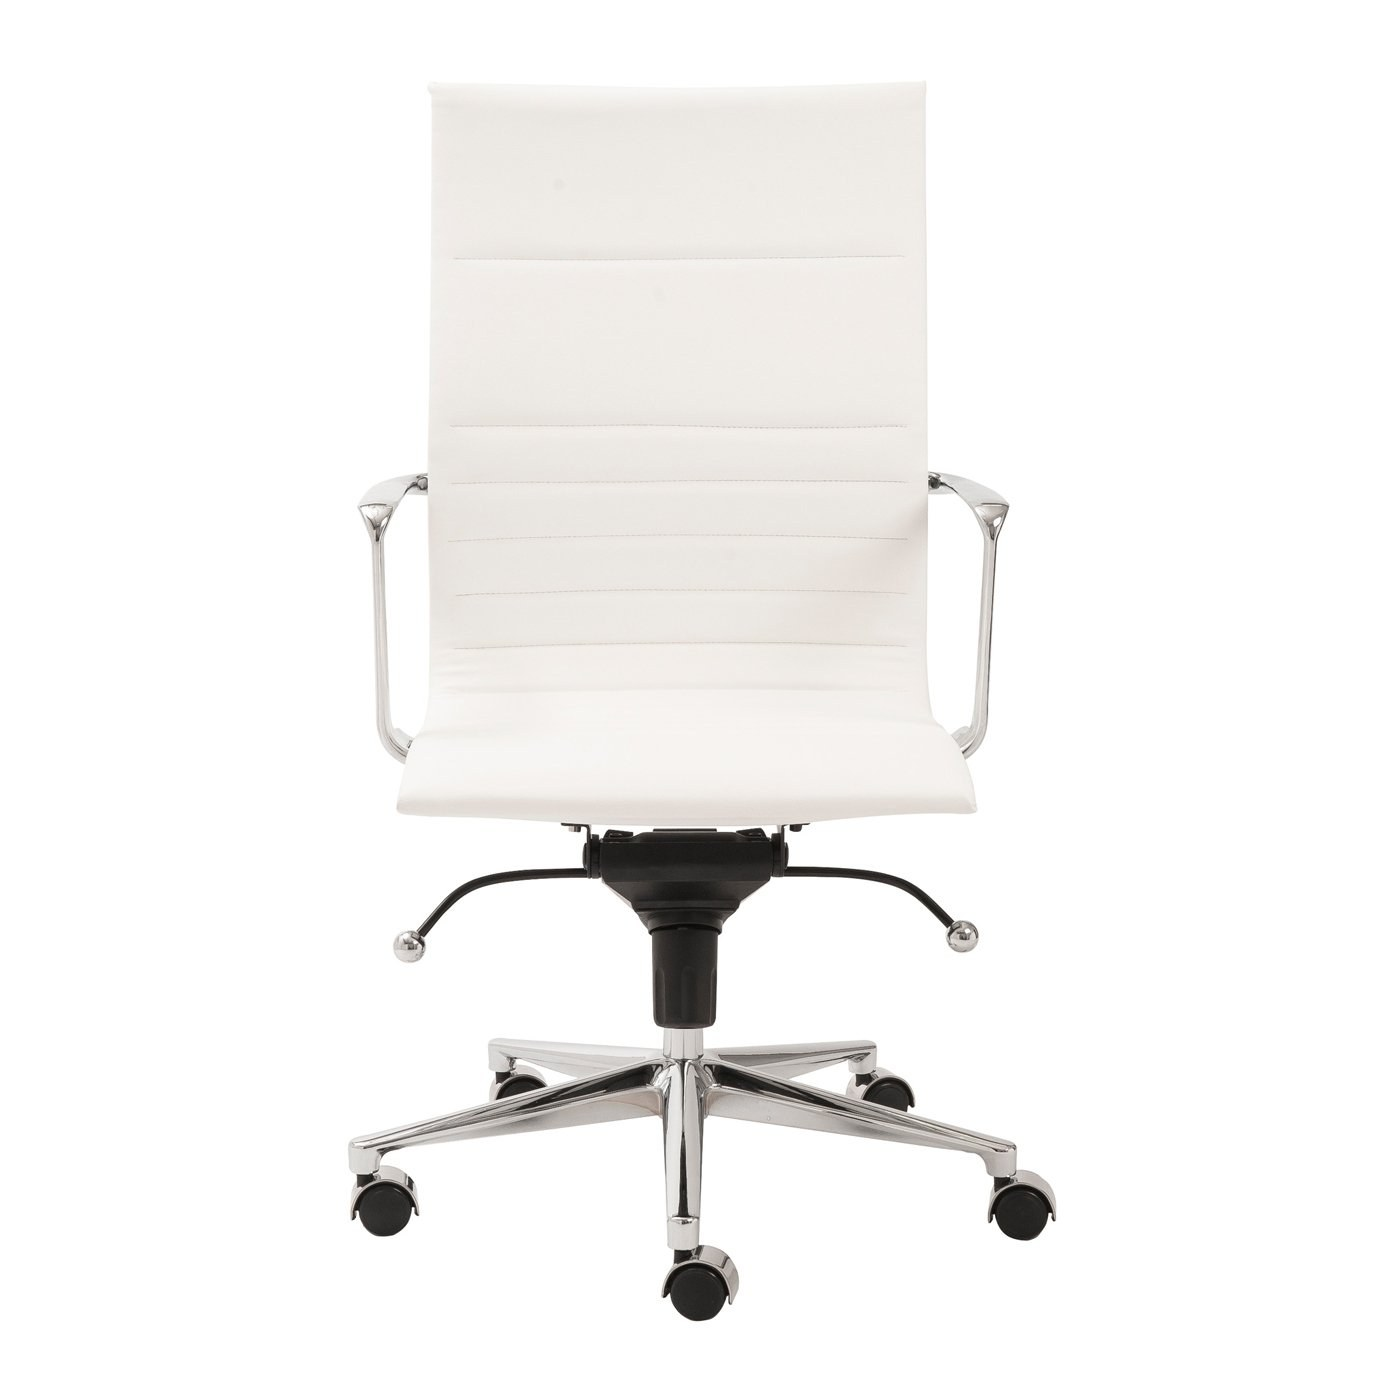 Magnificent Kyler High Back Office Chair With White Leatherette Upholstery By Euro Style Inzonedesignstudio Interior Chair Design Inzonedesignstudiocom